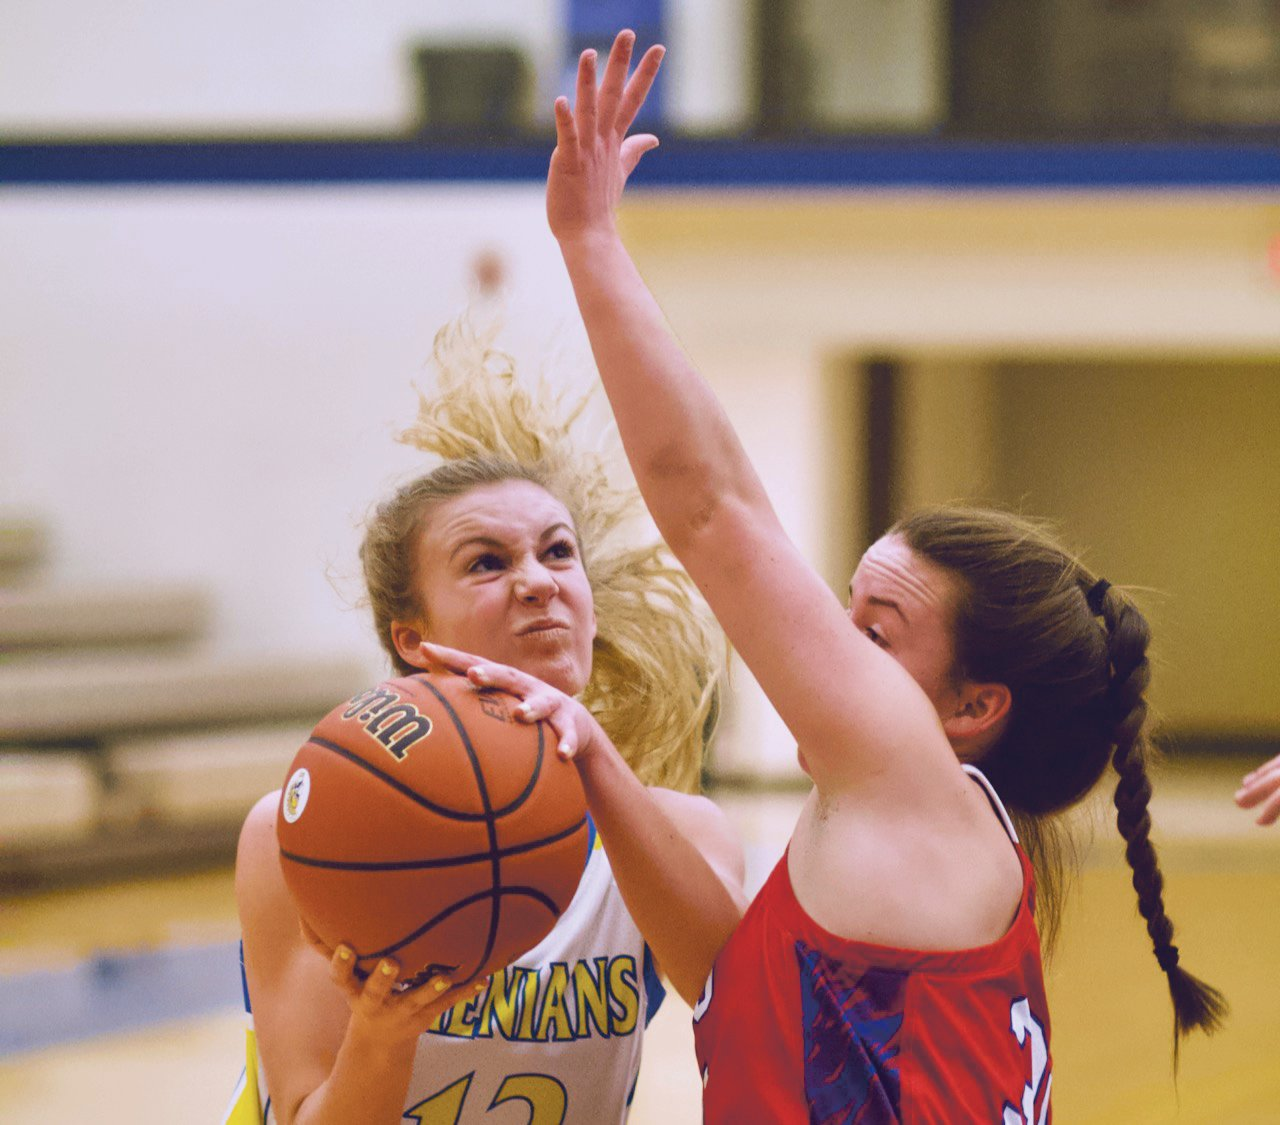 Crawfordsville's Lauren Kellerman scored 10 points in a Sagamore Conference loss to Western Boone on Tuesday.